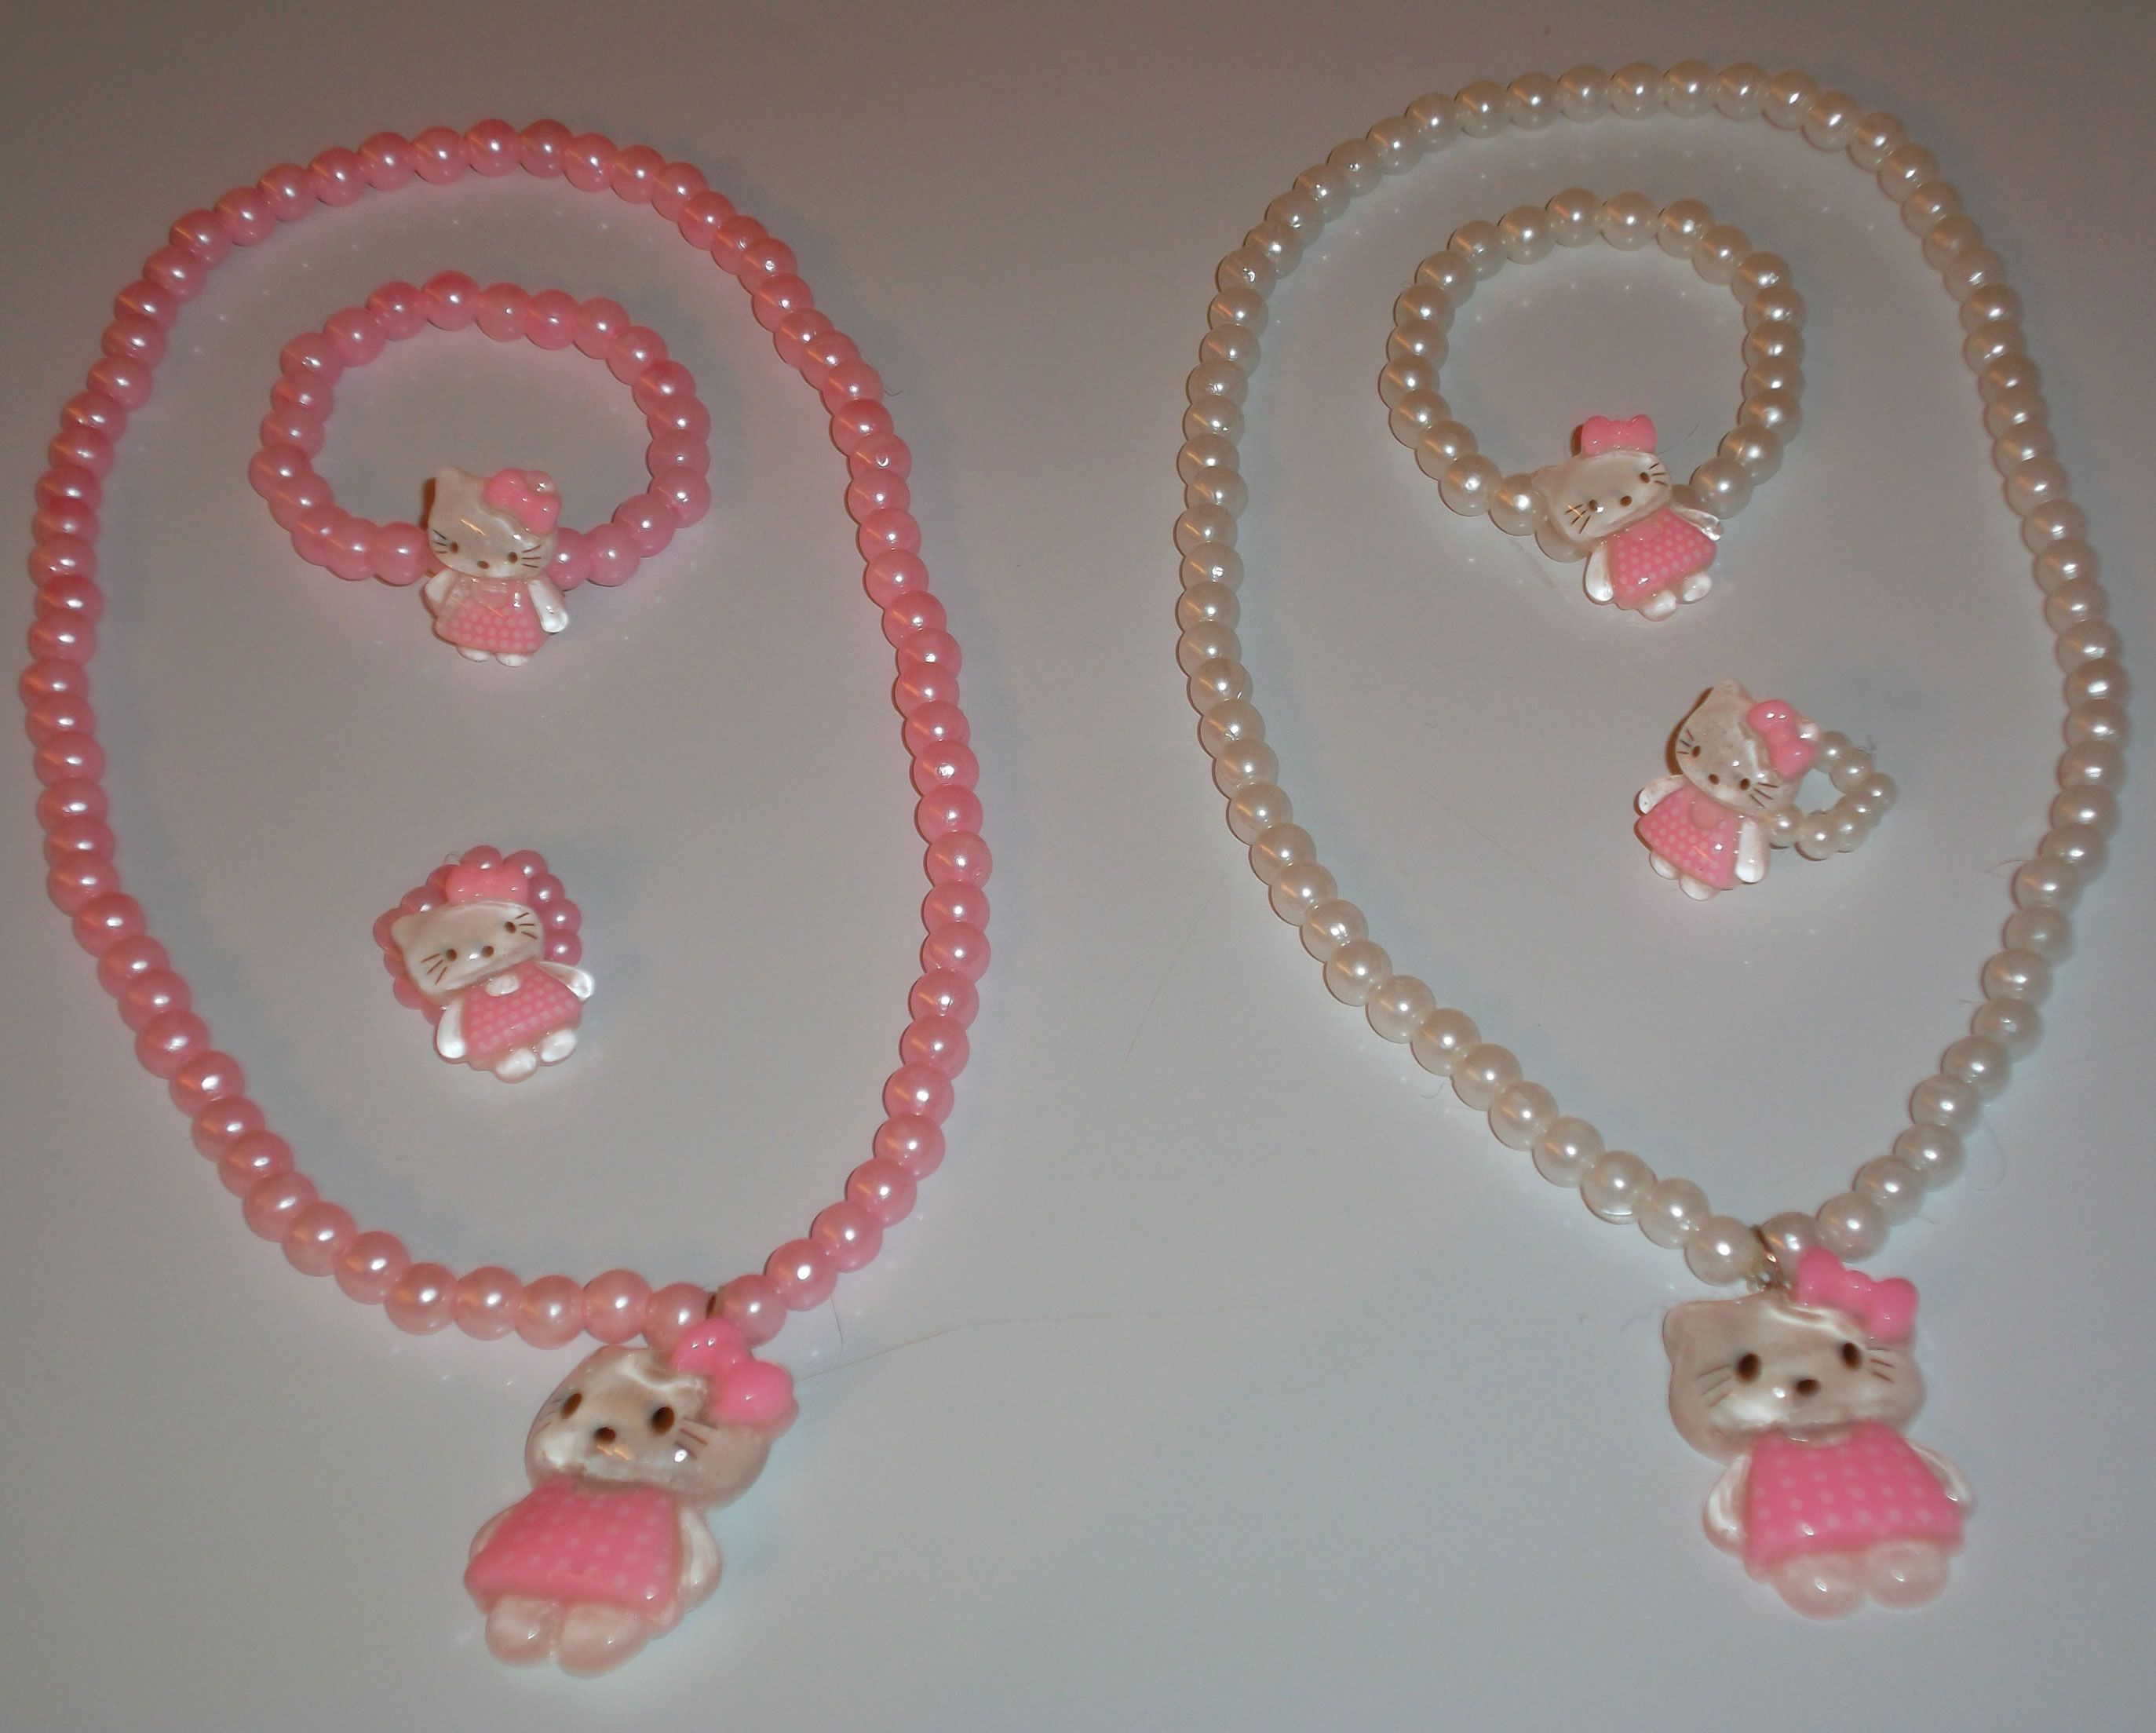 Little girlus pearl jewelry sets with kitty pendants necklace